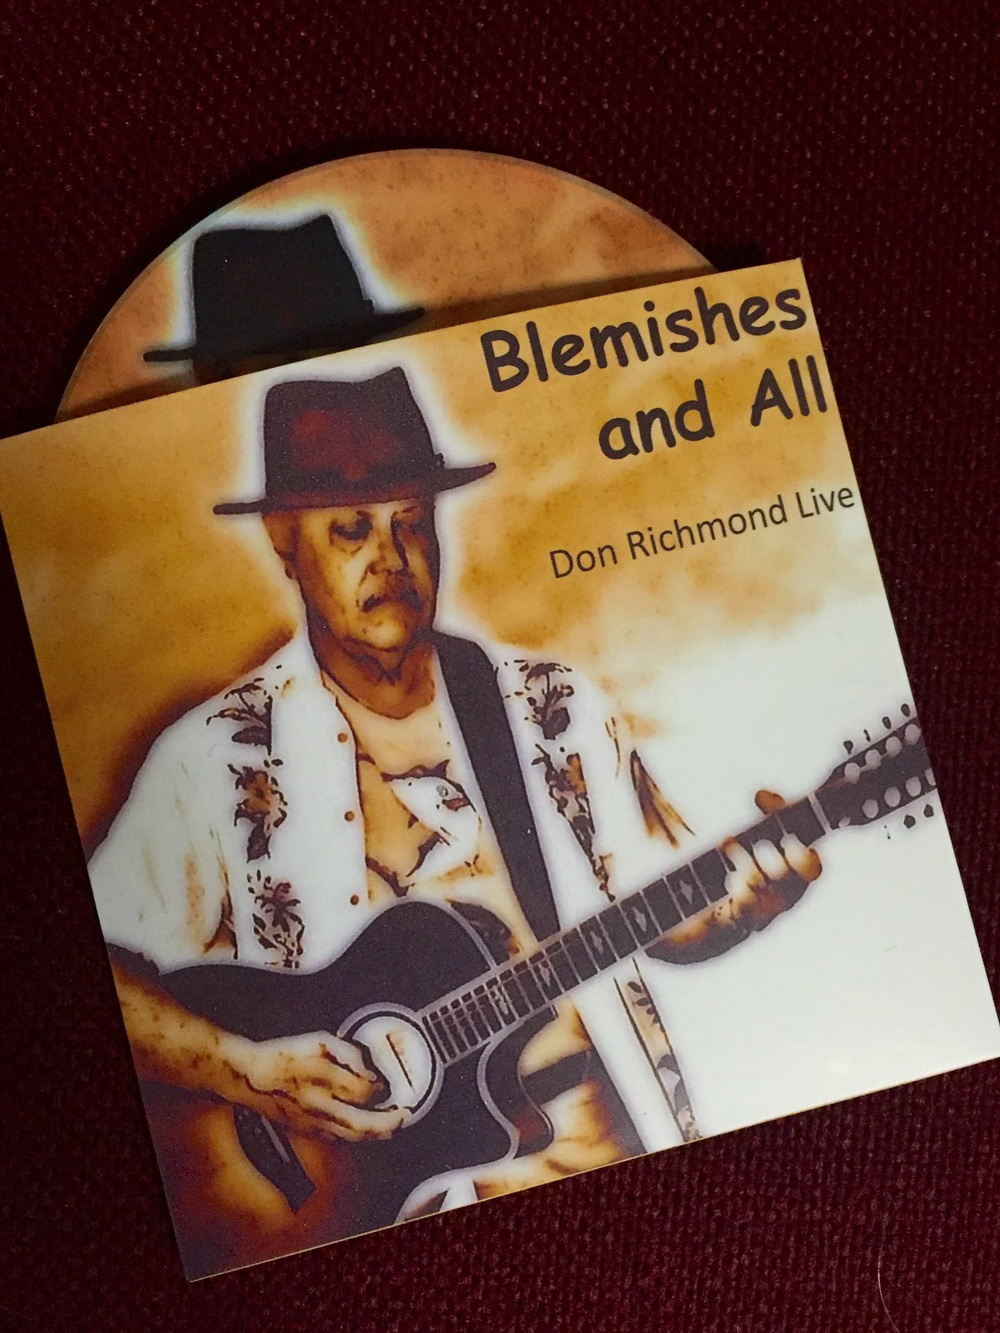 Don Richmond is set to release the live CD 'Blemishes and All' in March 2016.